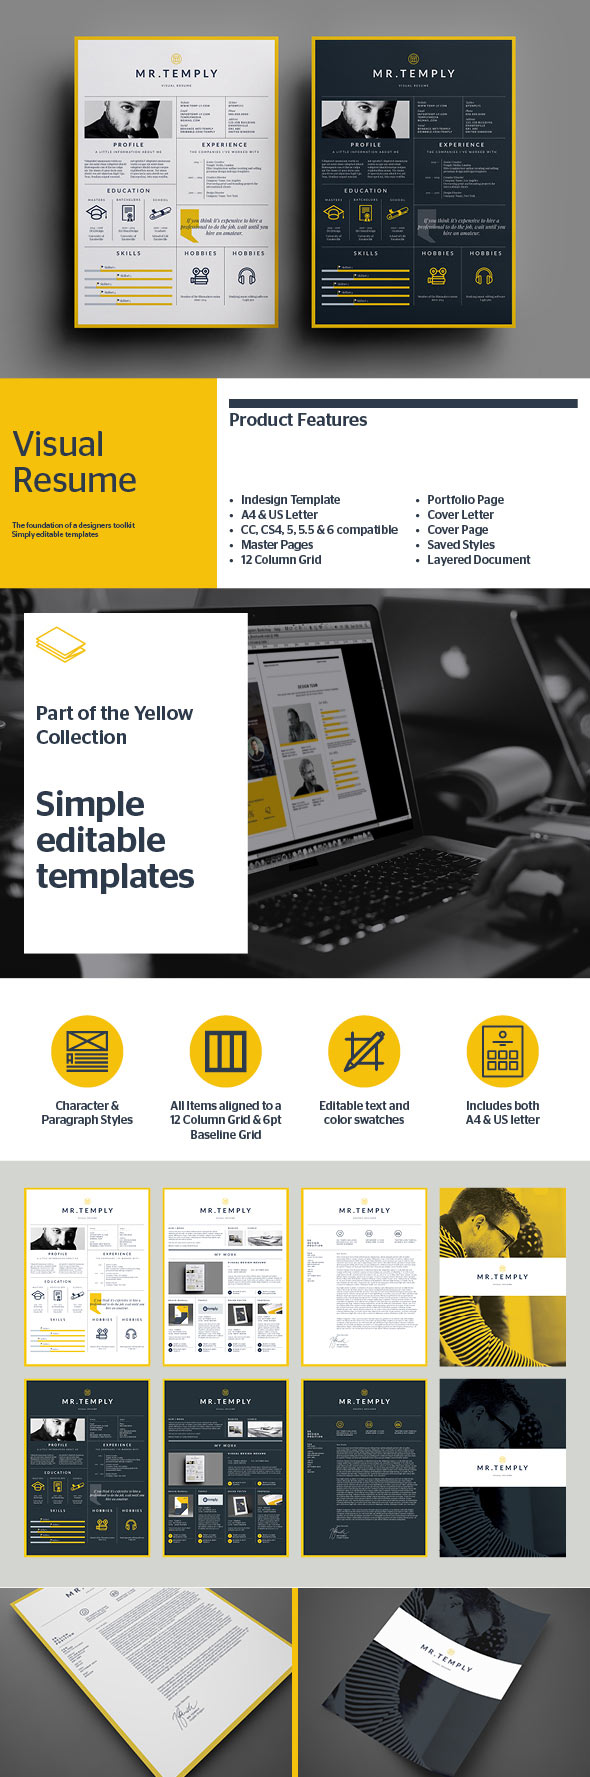 creative dynamic resume cv templates for professional jobs in new age visual template Resume New Age Resume Templates